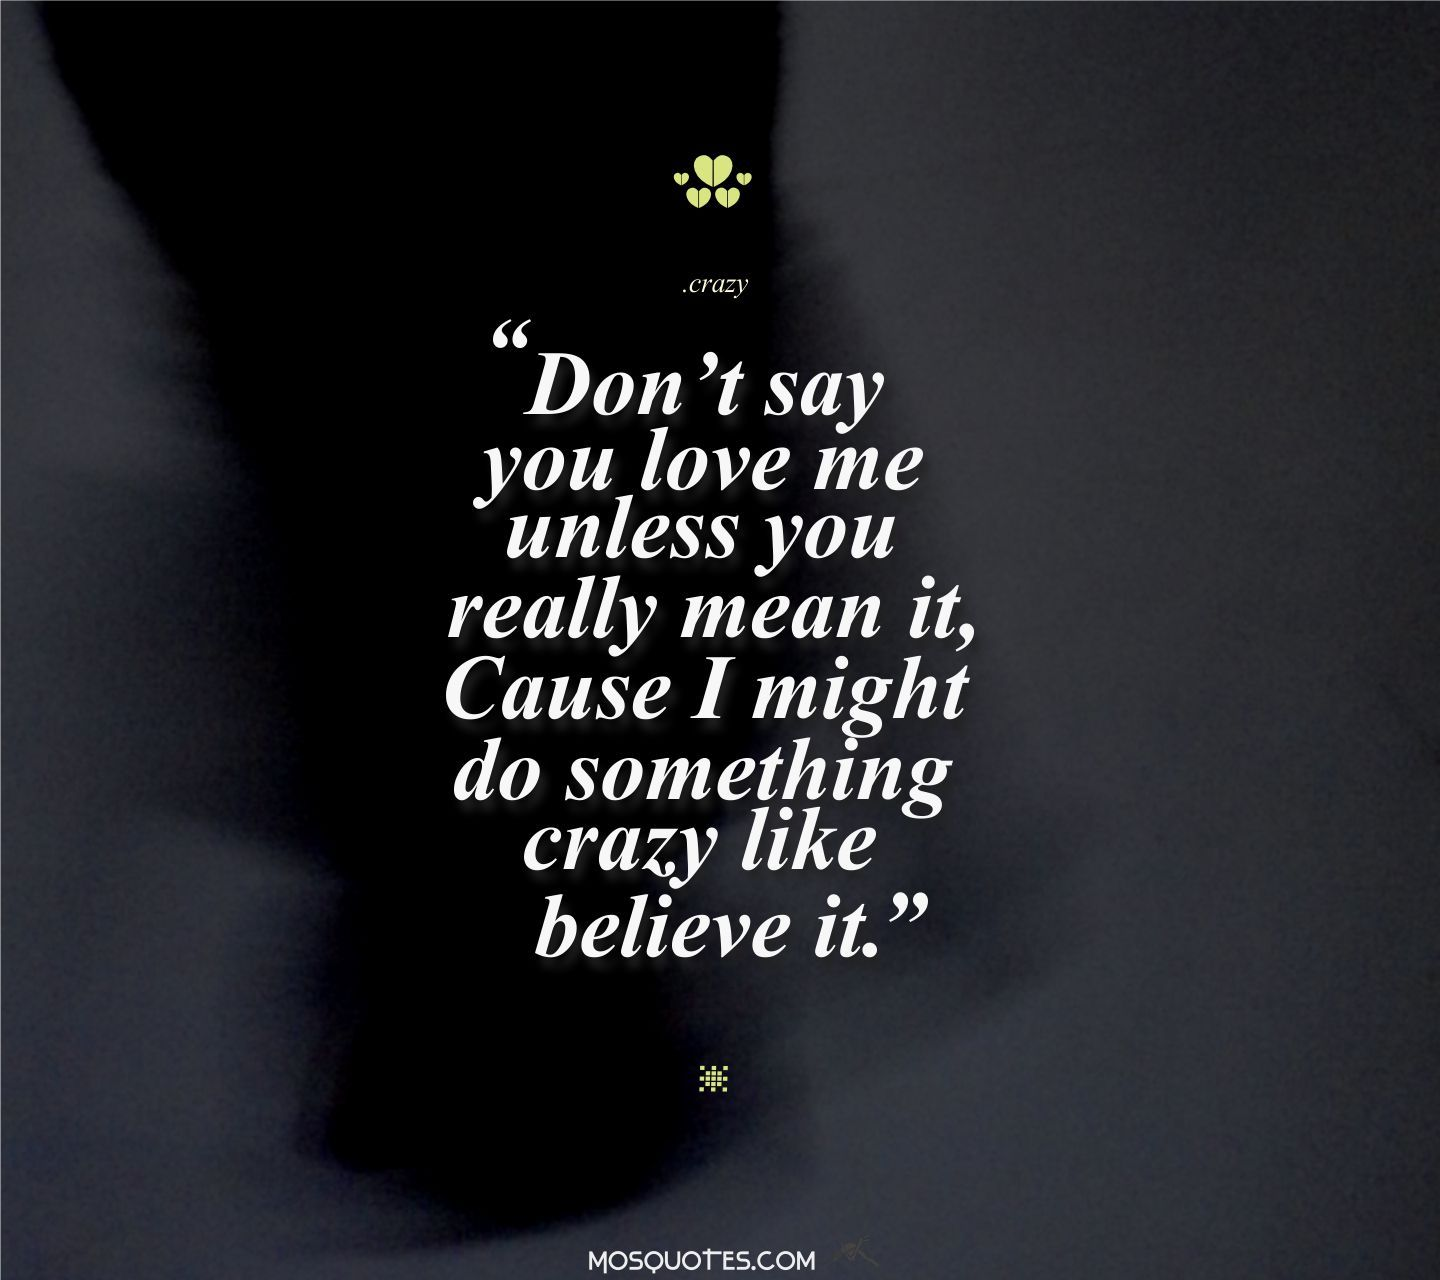 Cute Emo Love Quotes Don't Say You Love Me Unless You